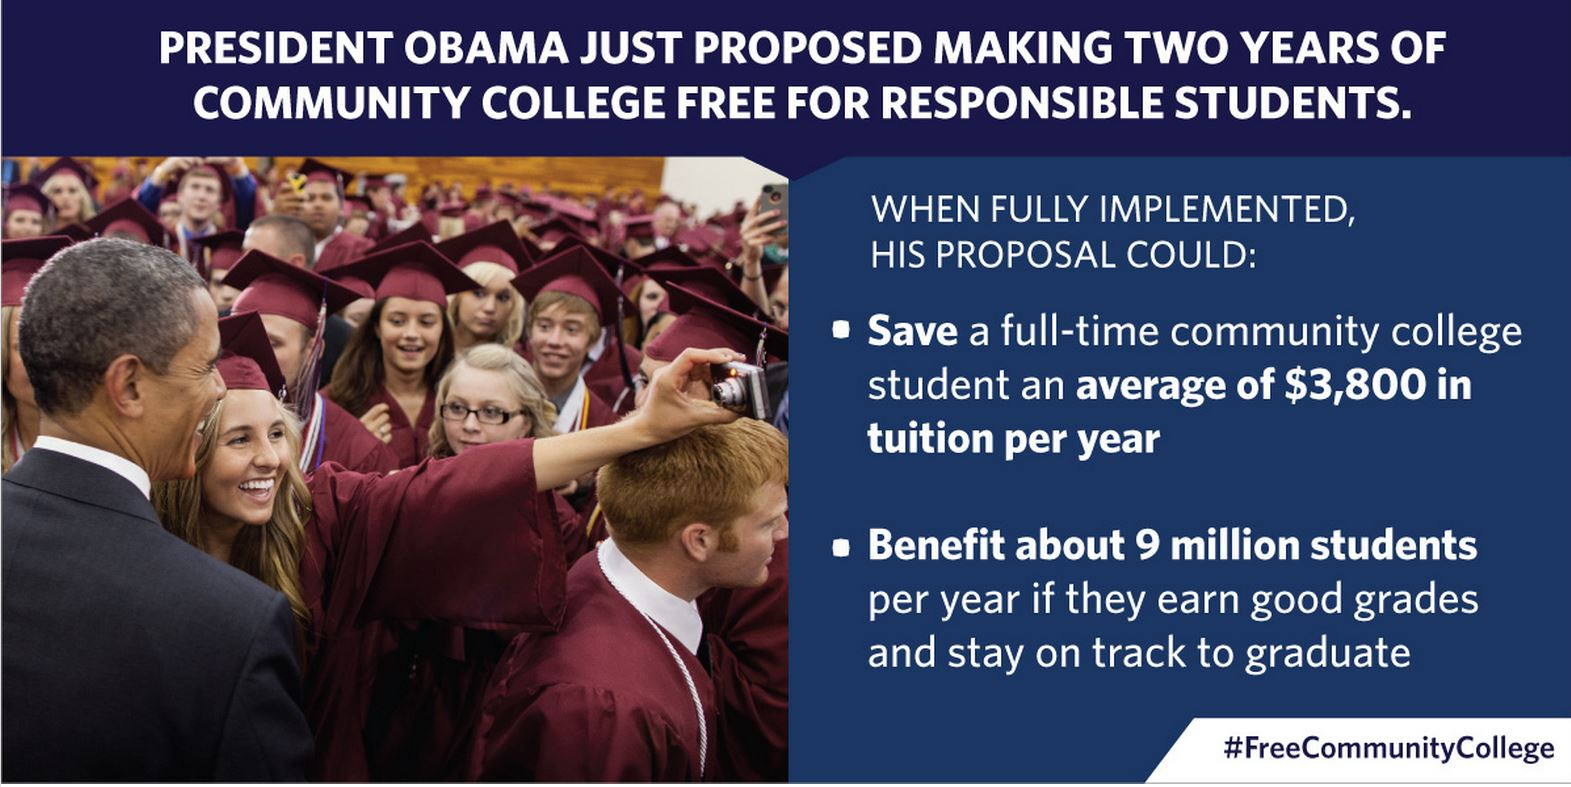 President Obama proposes free community college for responsible students 2